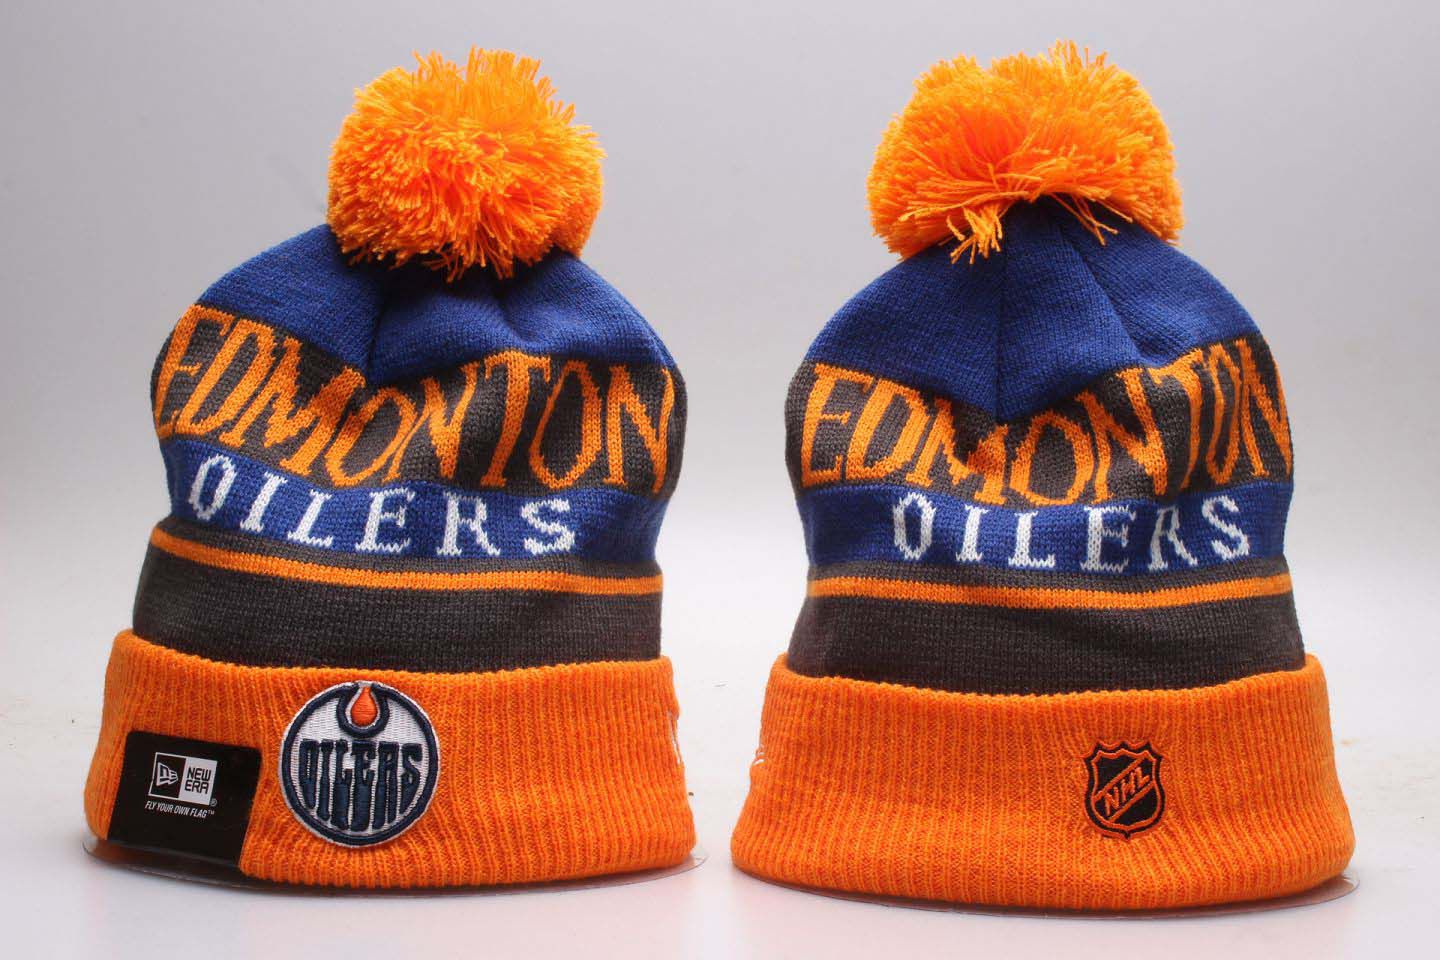 NHL Edmonton Oilers Beanie hot hat